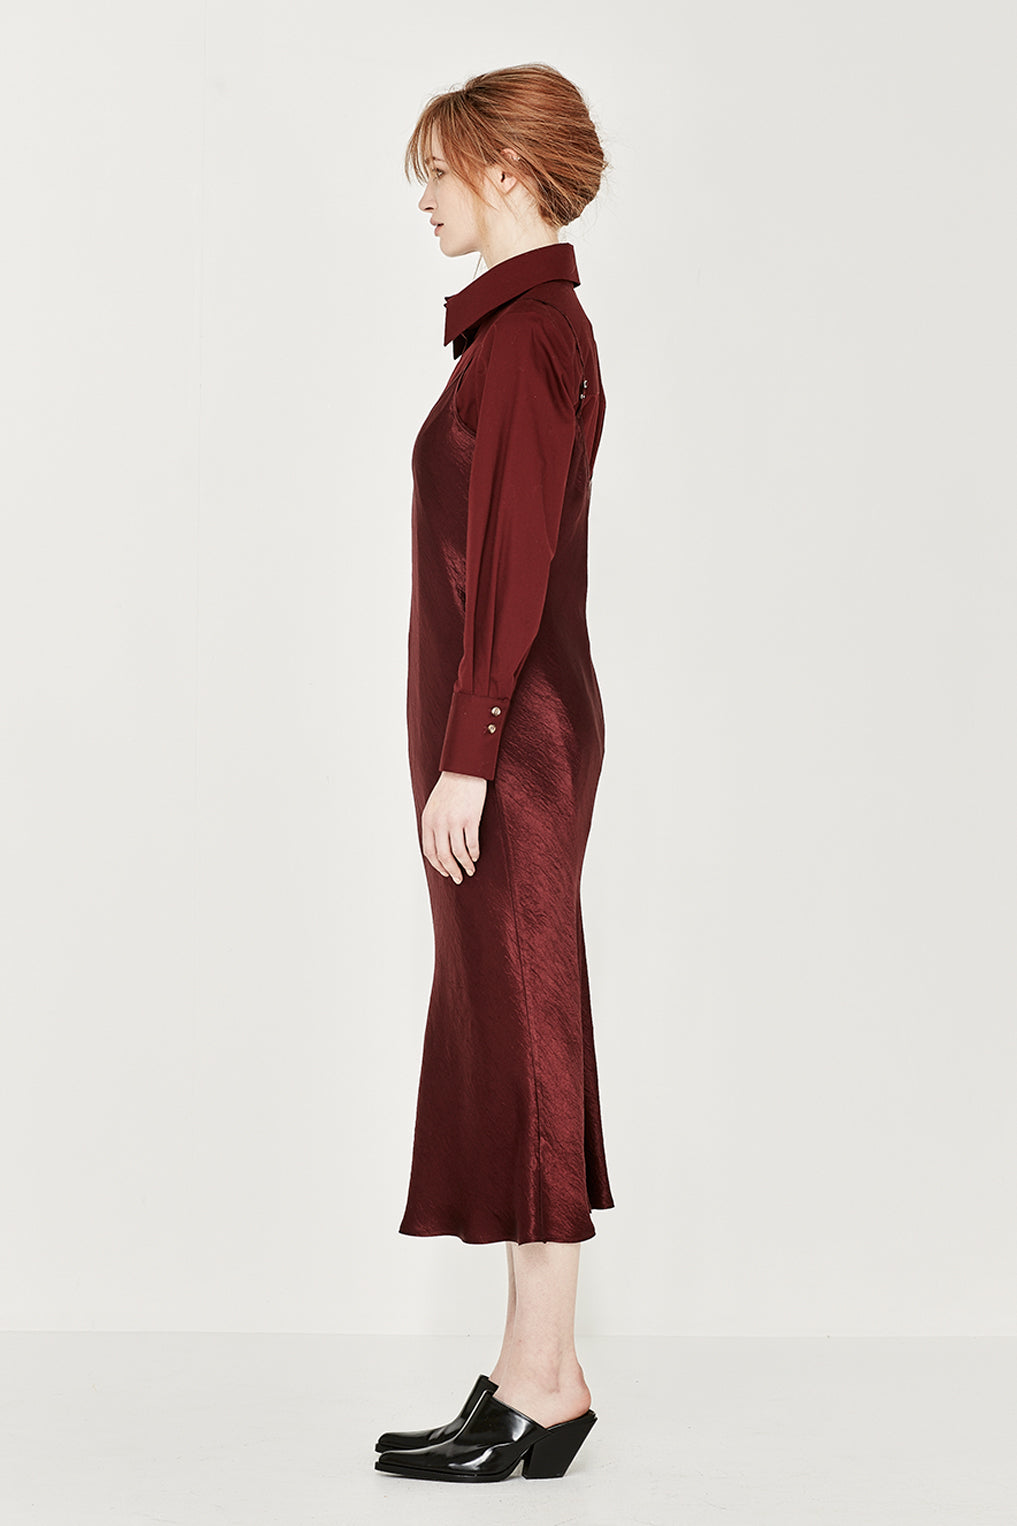 The Corsica Slip Dress in Crushed Bordeaux